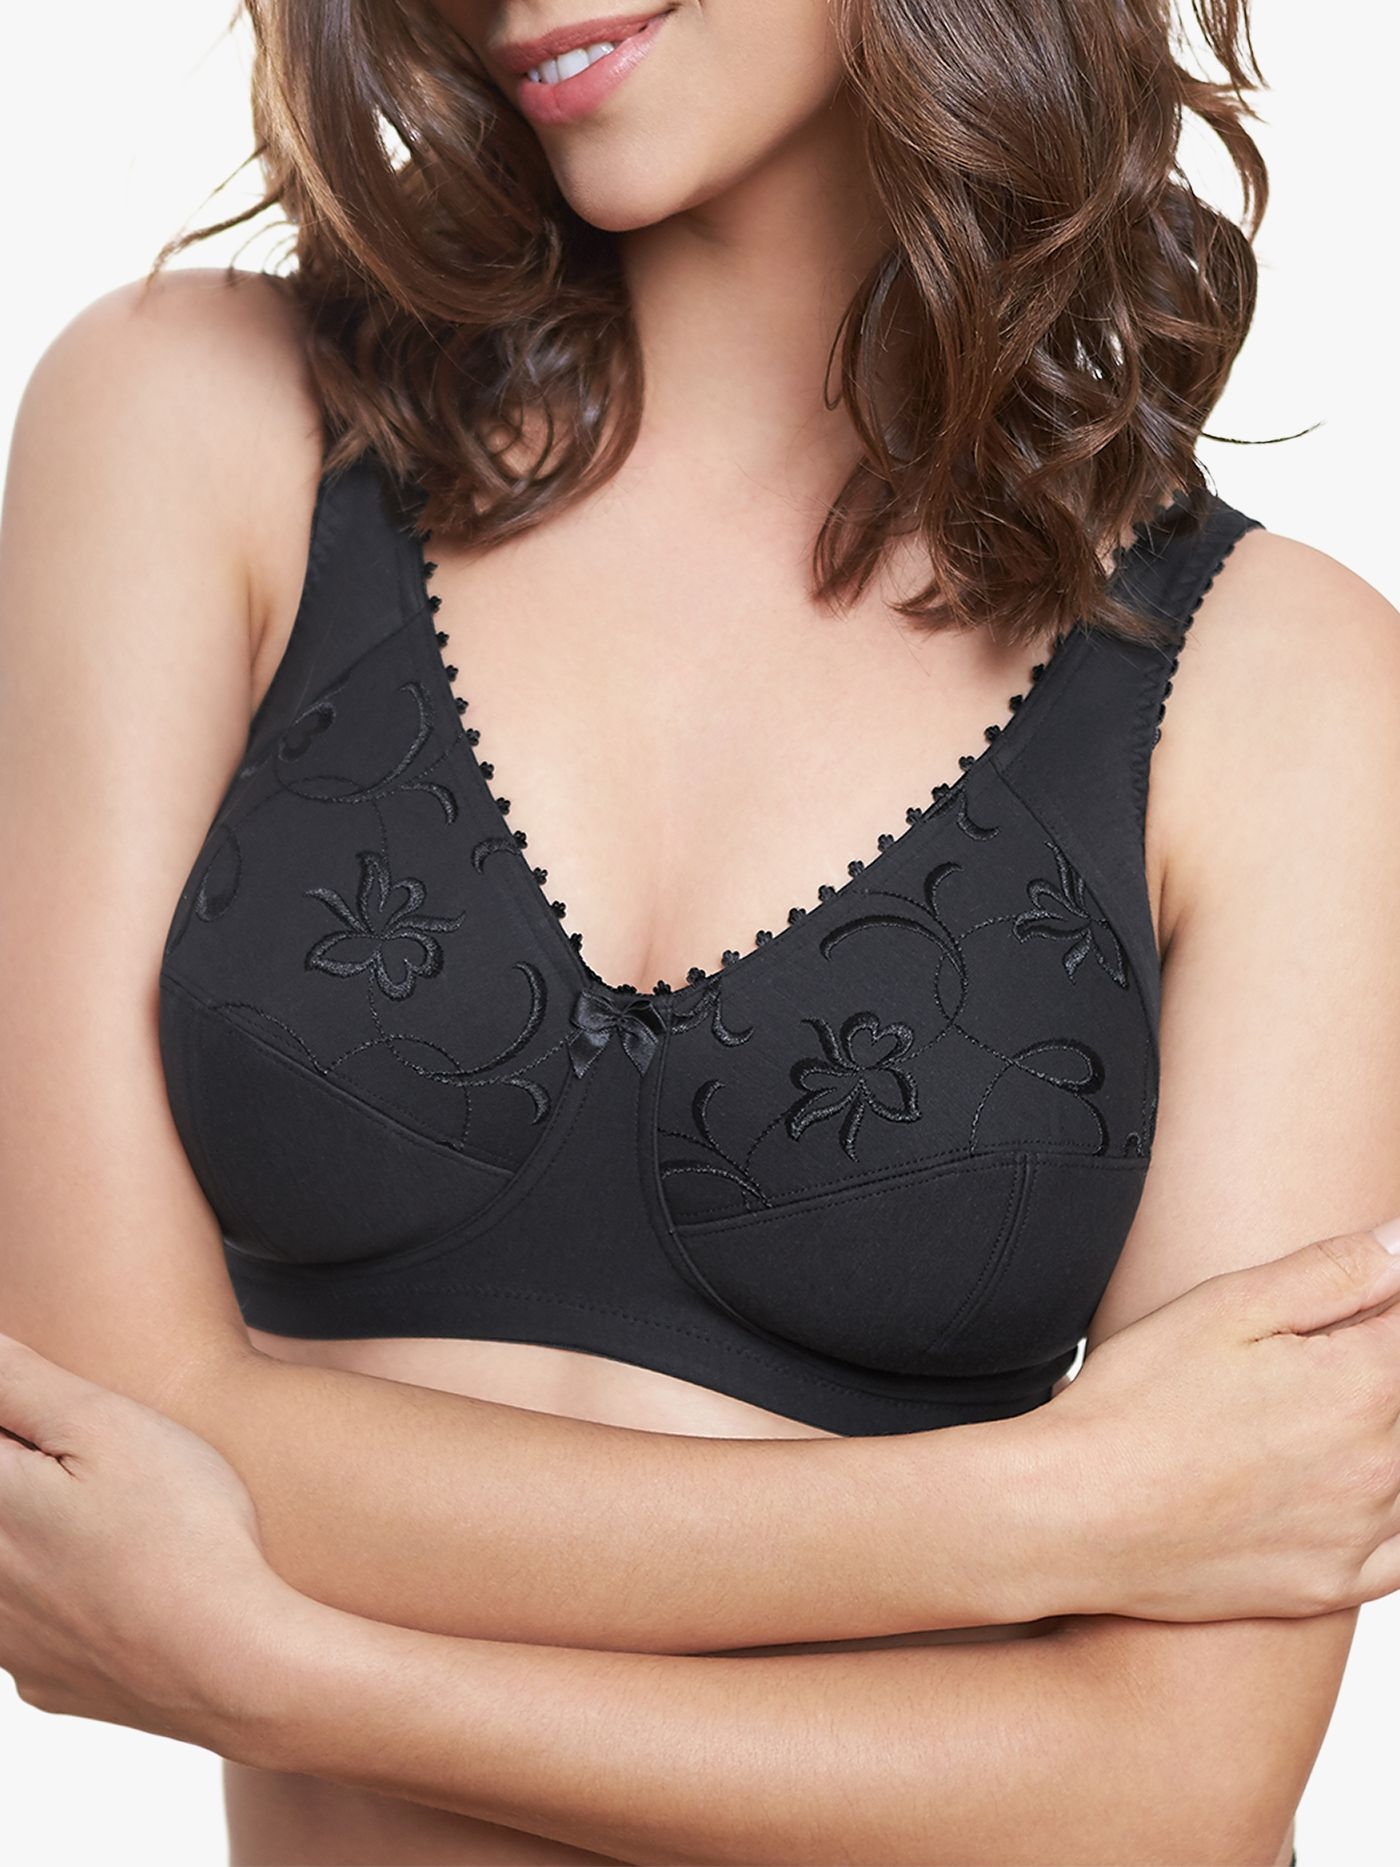 Royce Grace 513 Cotton Rich Non-Wired Bra, Black